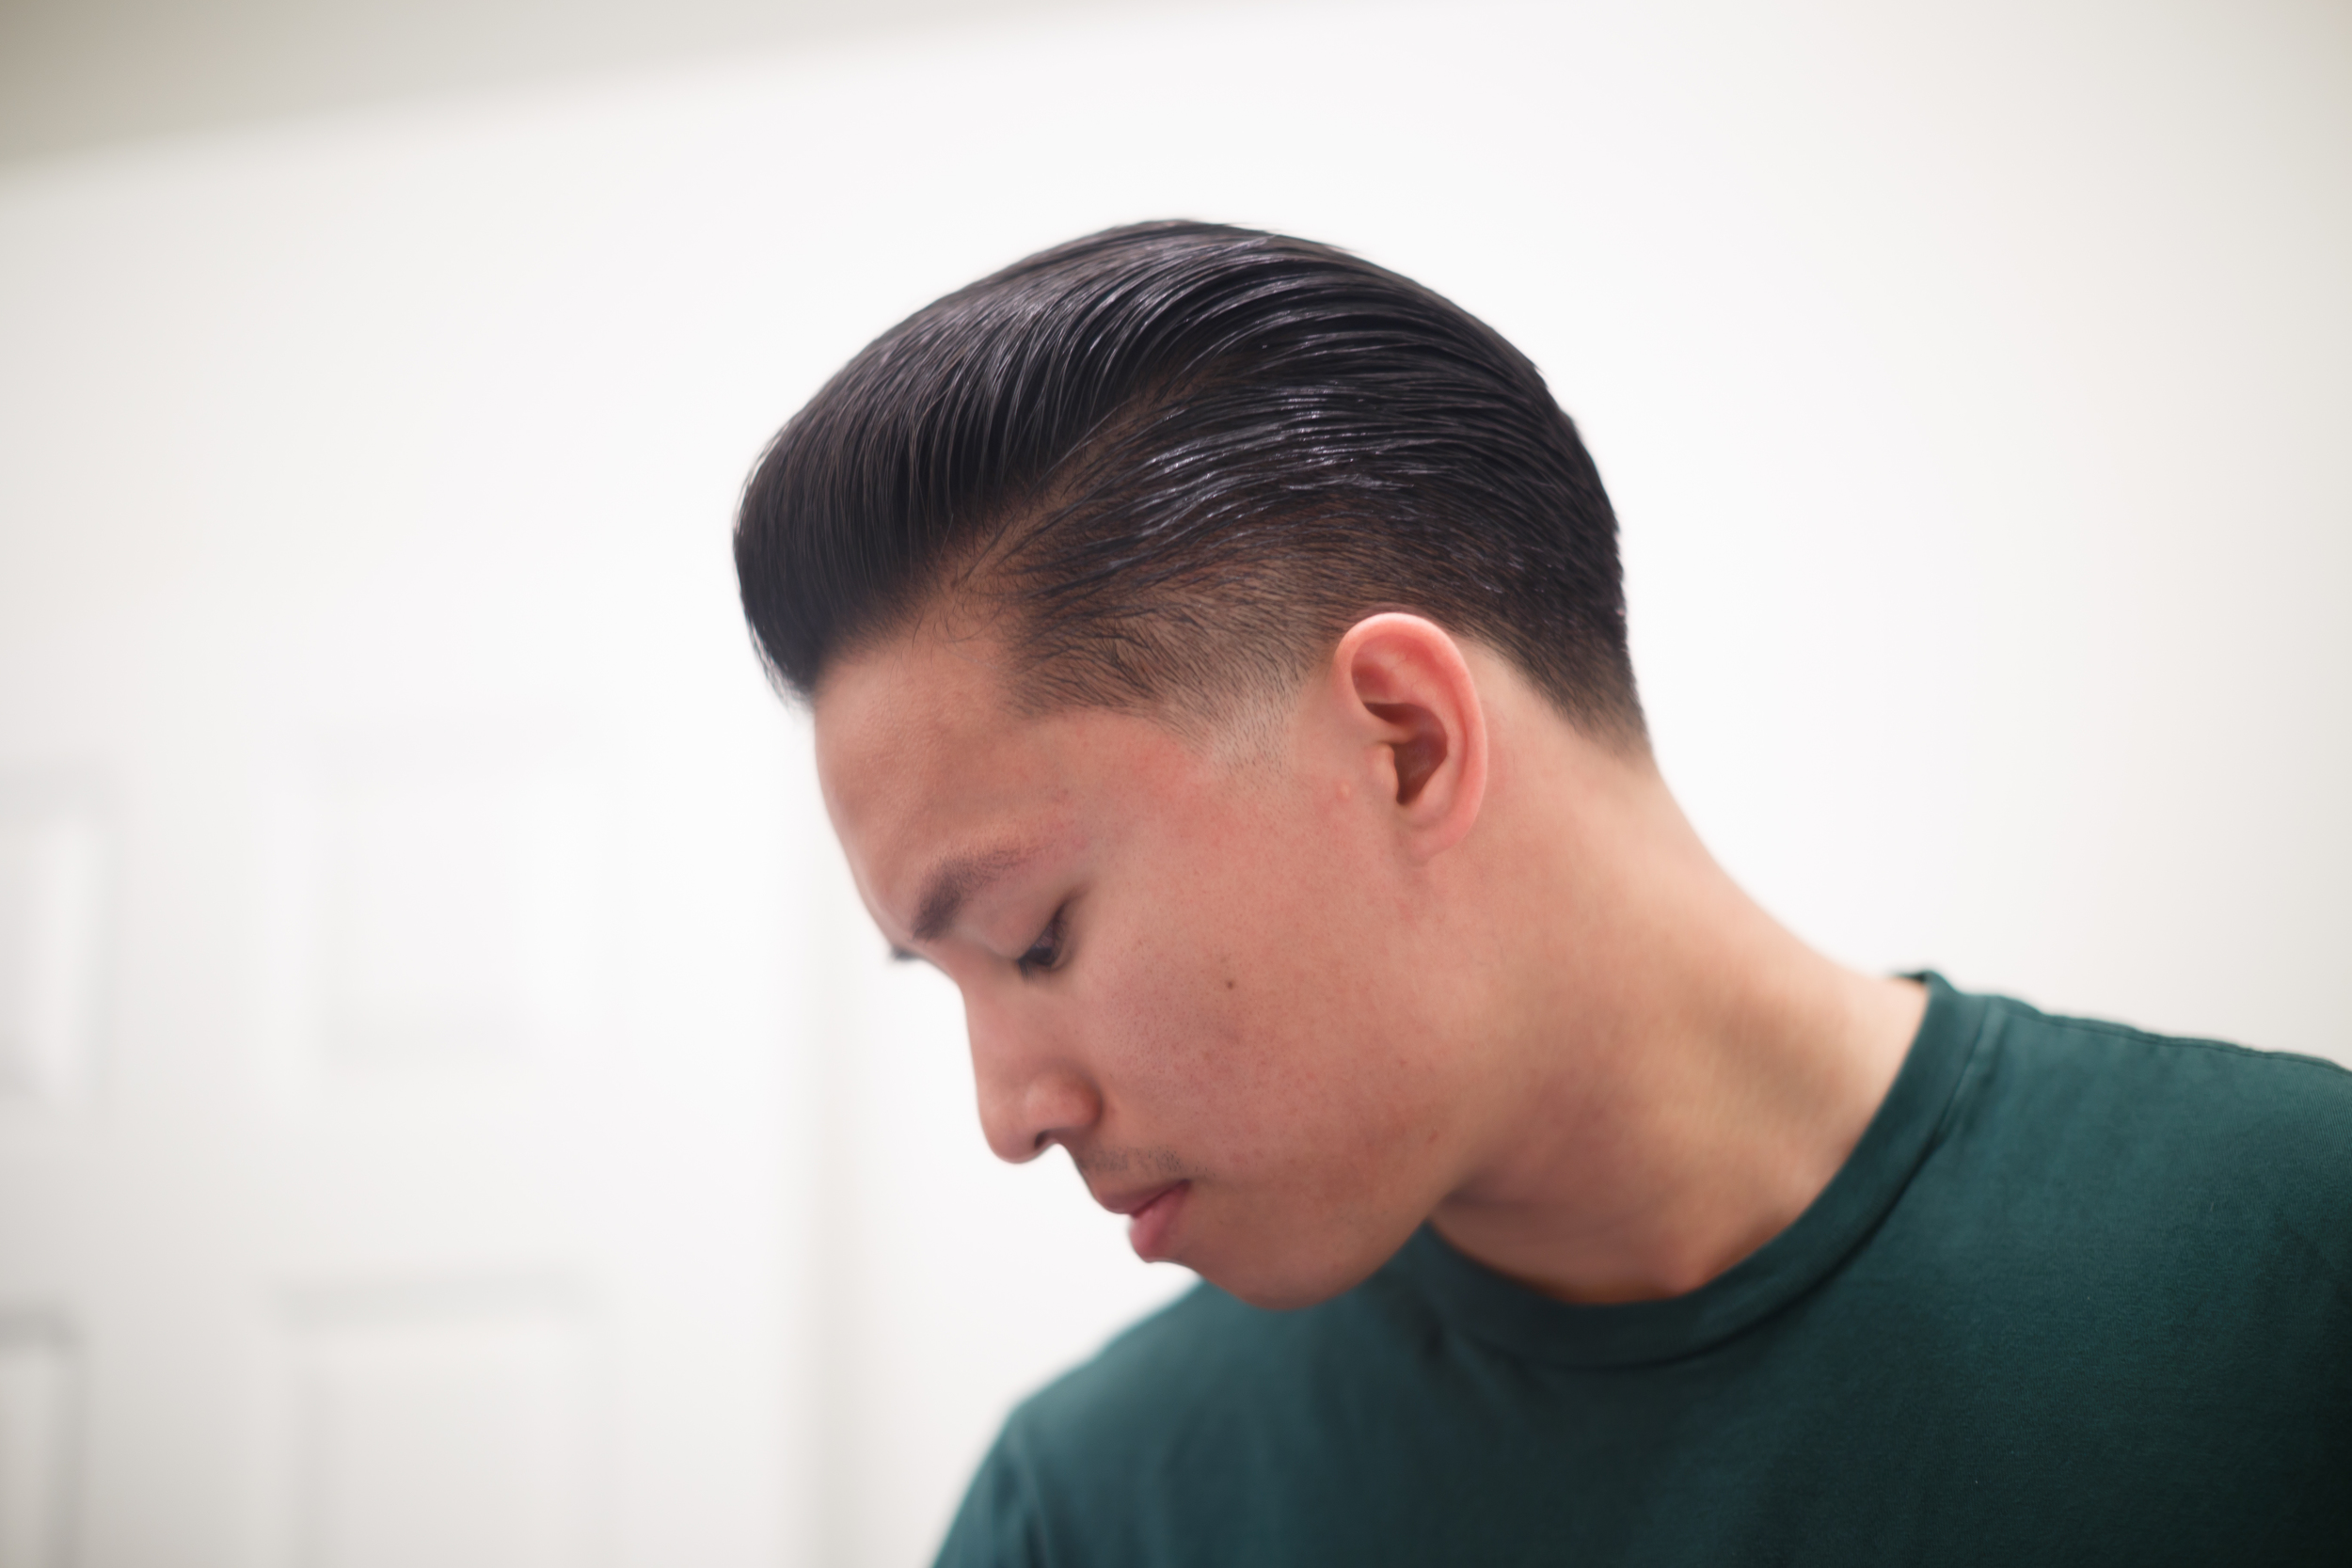 Low Mid Taper Fade Hairstyle Haircut Barber Barbershop ThePomp Pomp Pomade Pompadour The Iron Society Water Soluble New York Jar